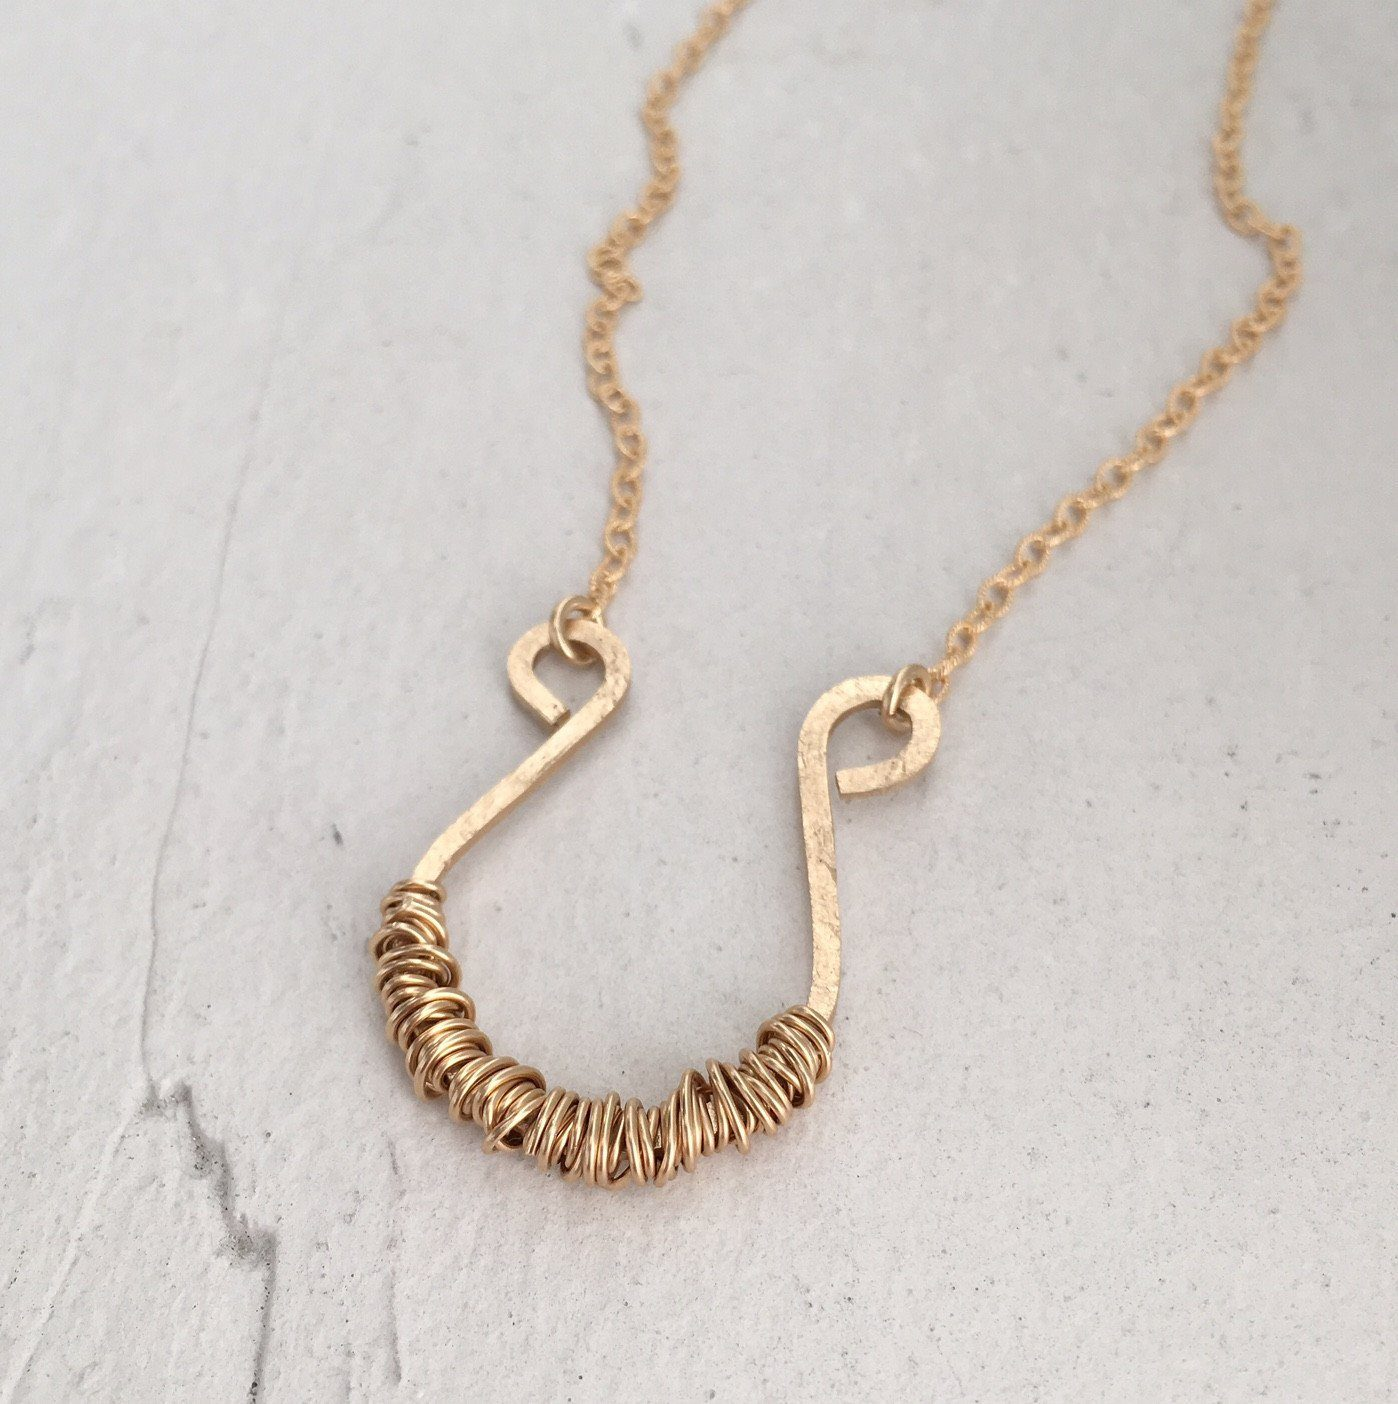 Horseshoe Necklace - IsabelleGraceJewelry